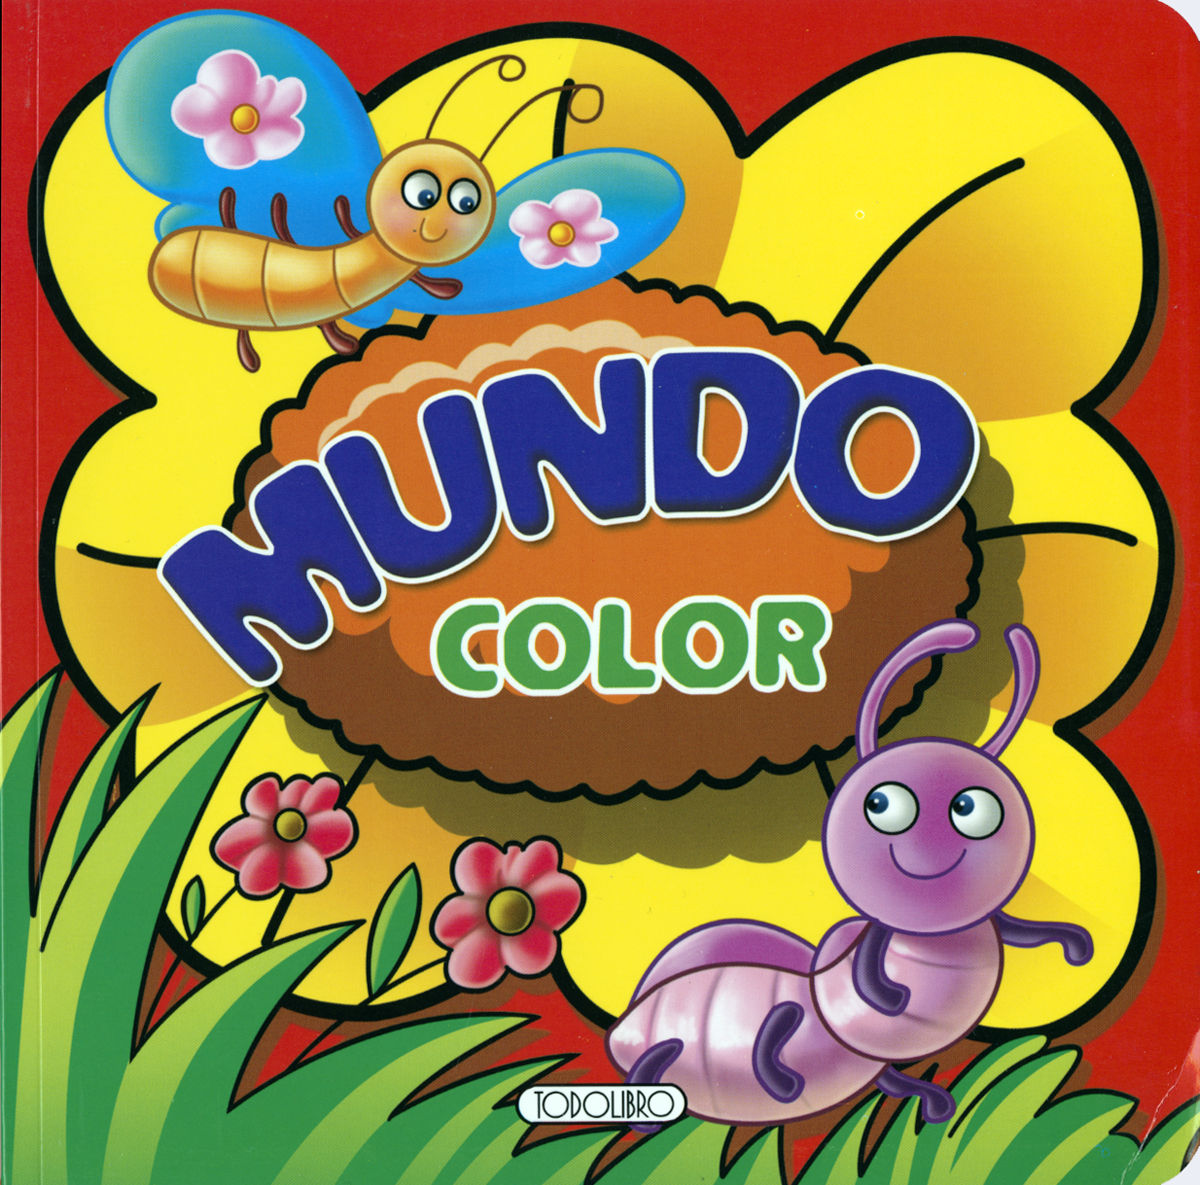 MUNDO COLOR (ROJO)